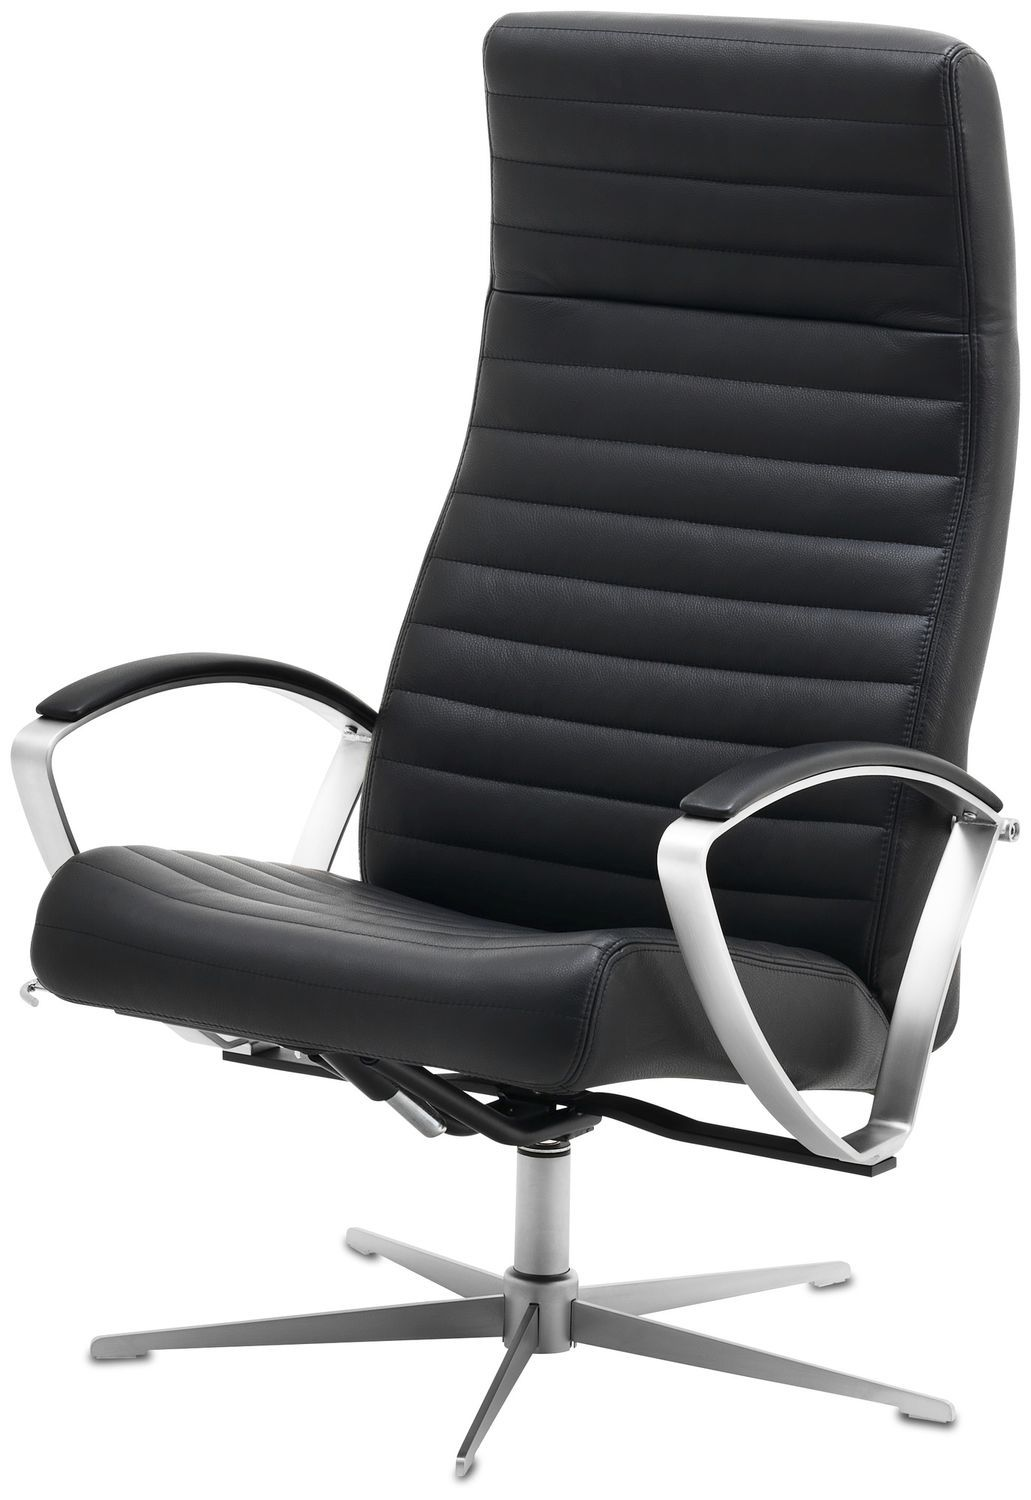 Contemporary Armchair / Fabric / Leather / Reclining   WING